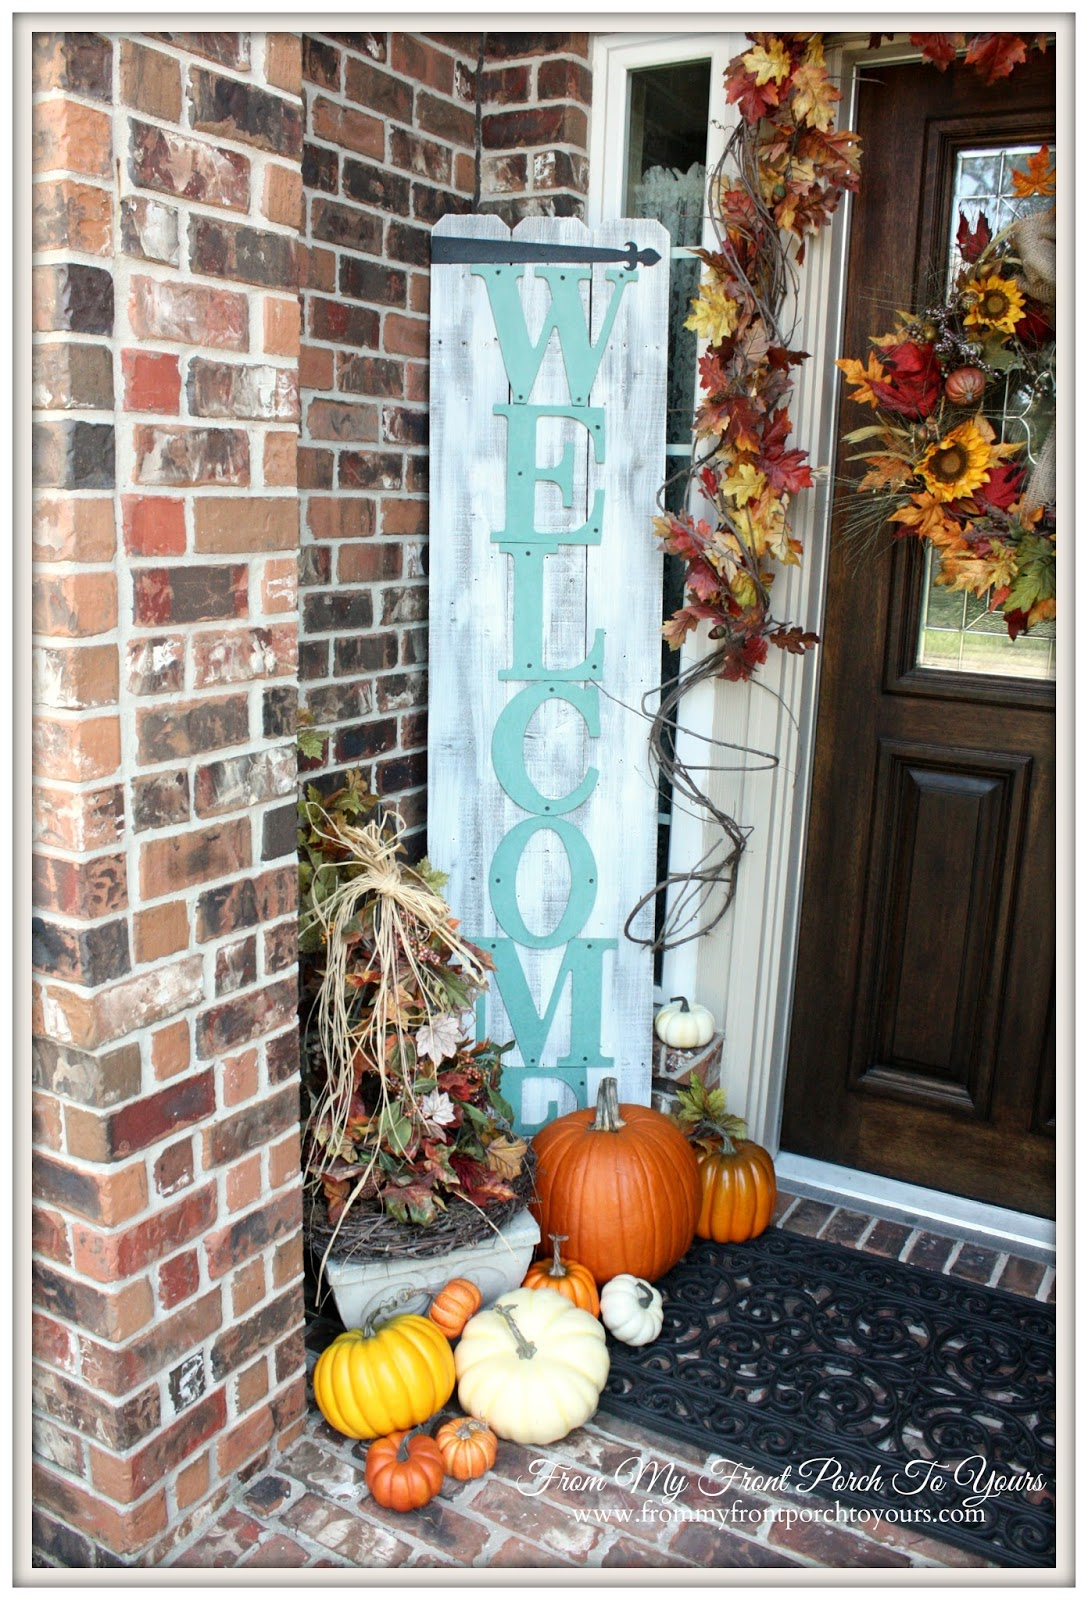 From My Front Porch To Yours- Falling For Fall Porch Party- Welcome Sign and Pumpkins